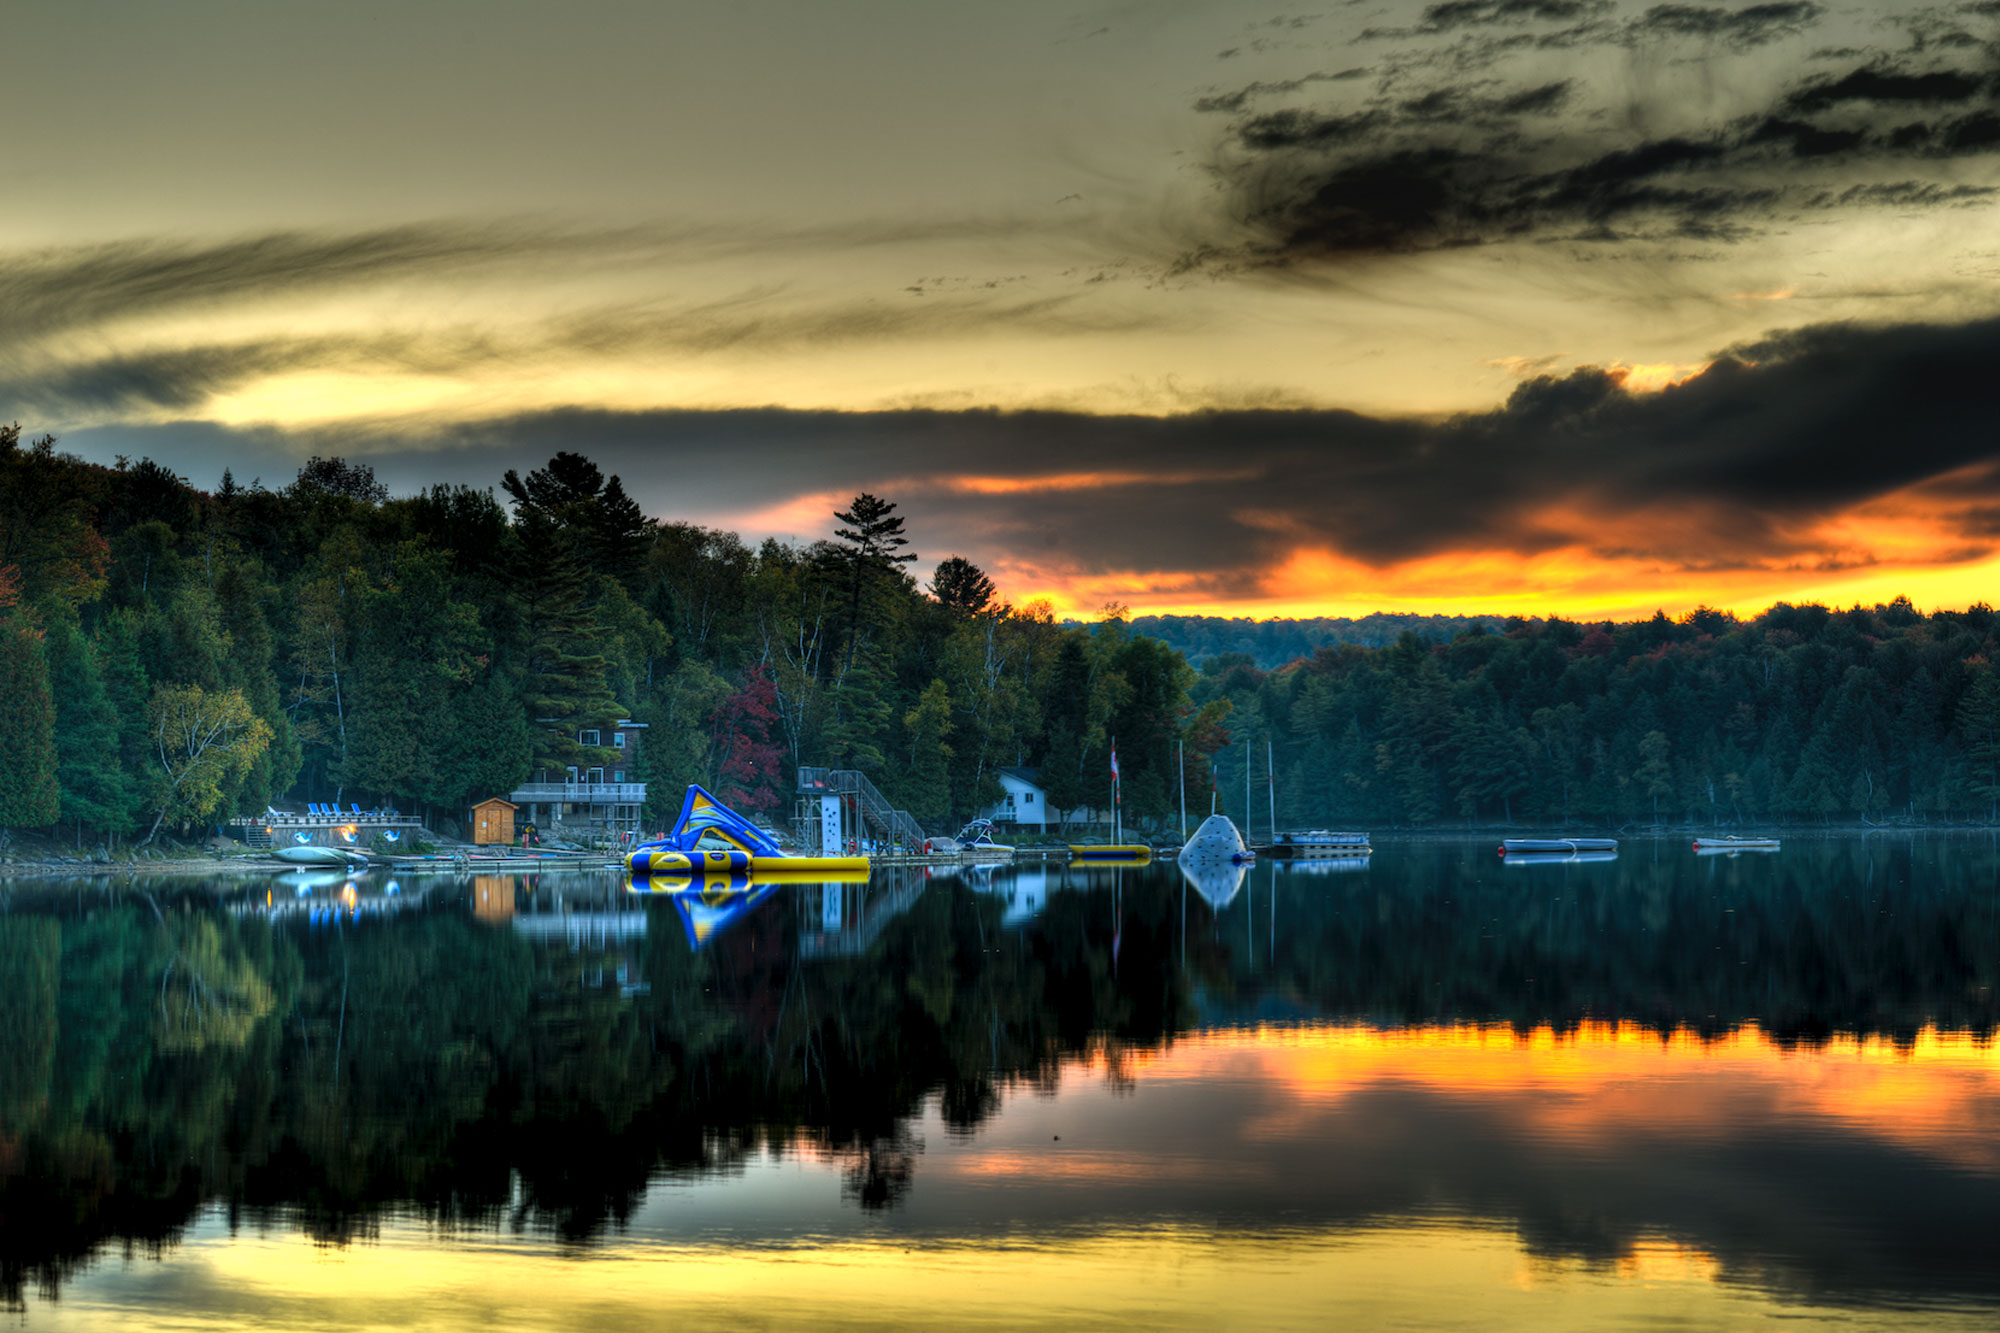 Camp Timberlane Lake at sunset with water activities and tree line in background